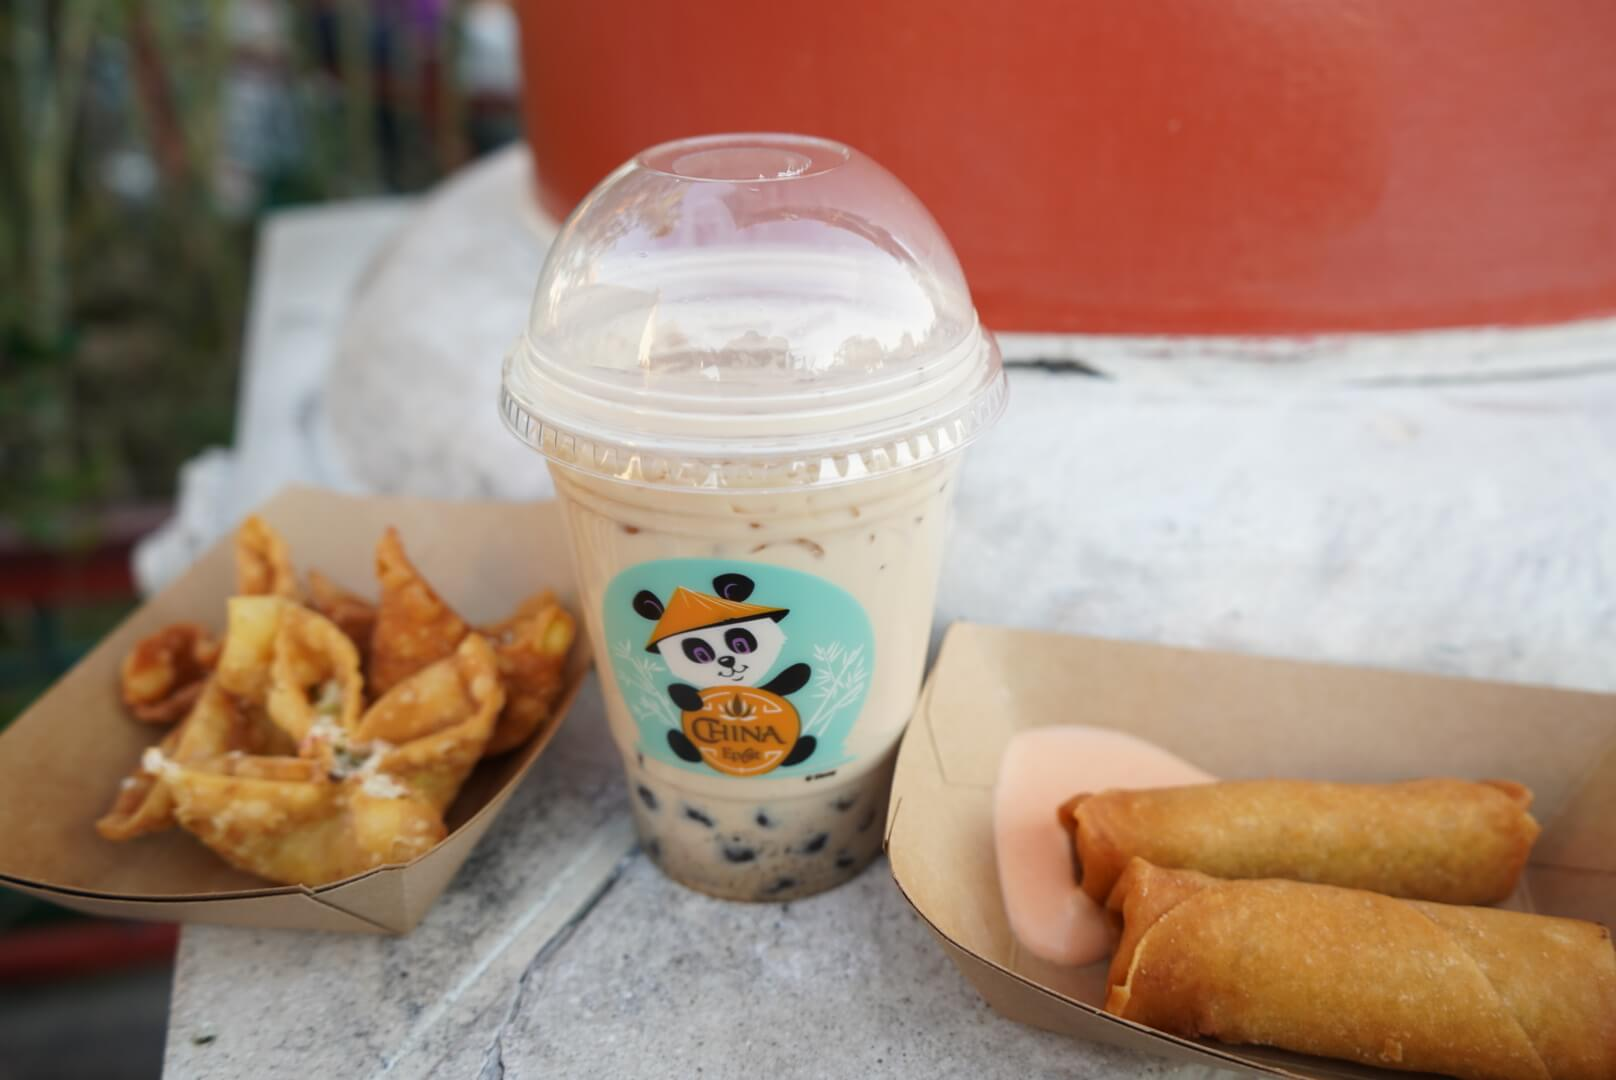 Crab and Cream Cheese Won Ton, Panda Bubble Tea, and Spring Rolls, from Lotus House China at Epcot Flower and Garden Festival 2019